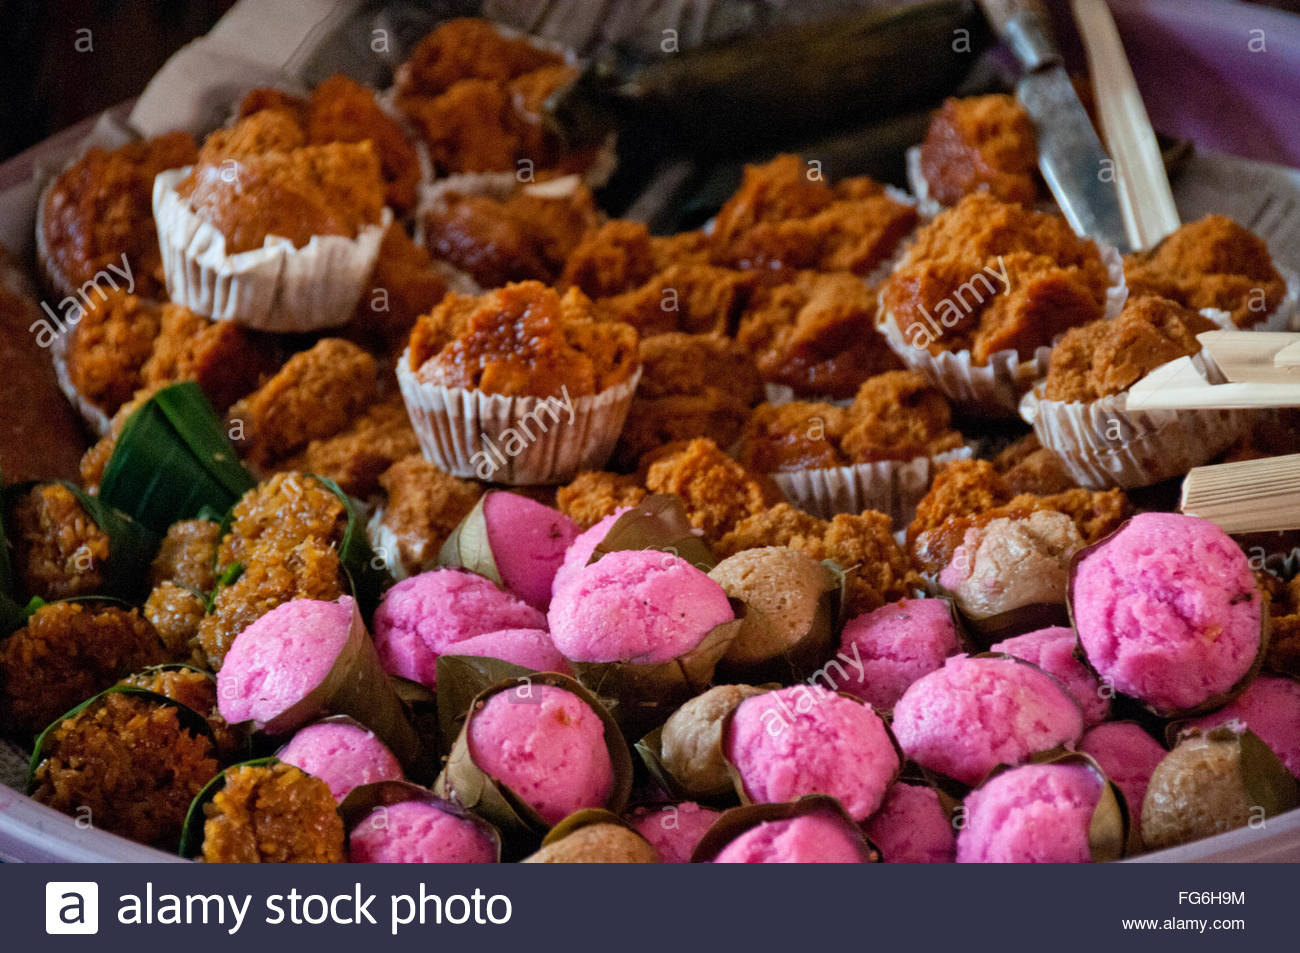 Colorful cakes on sale at the produce market in Ubud, Bali - Stock Image